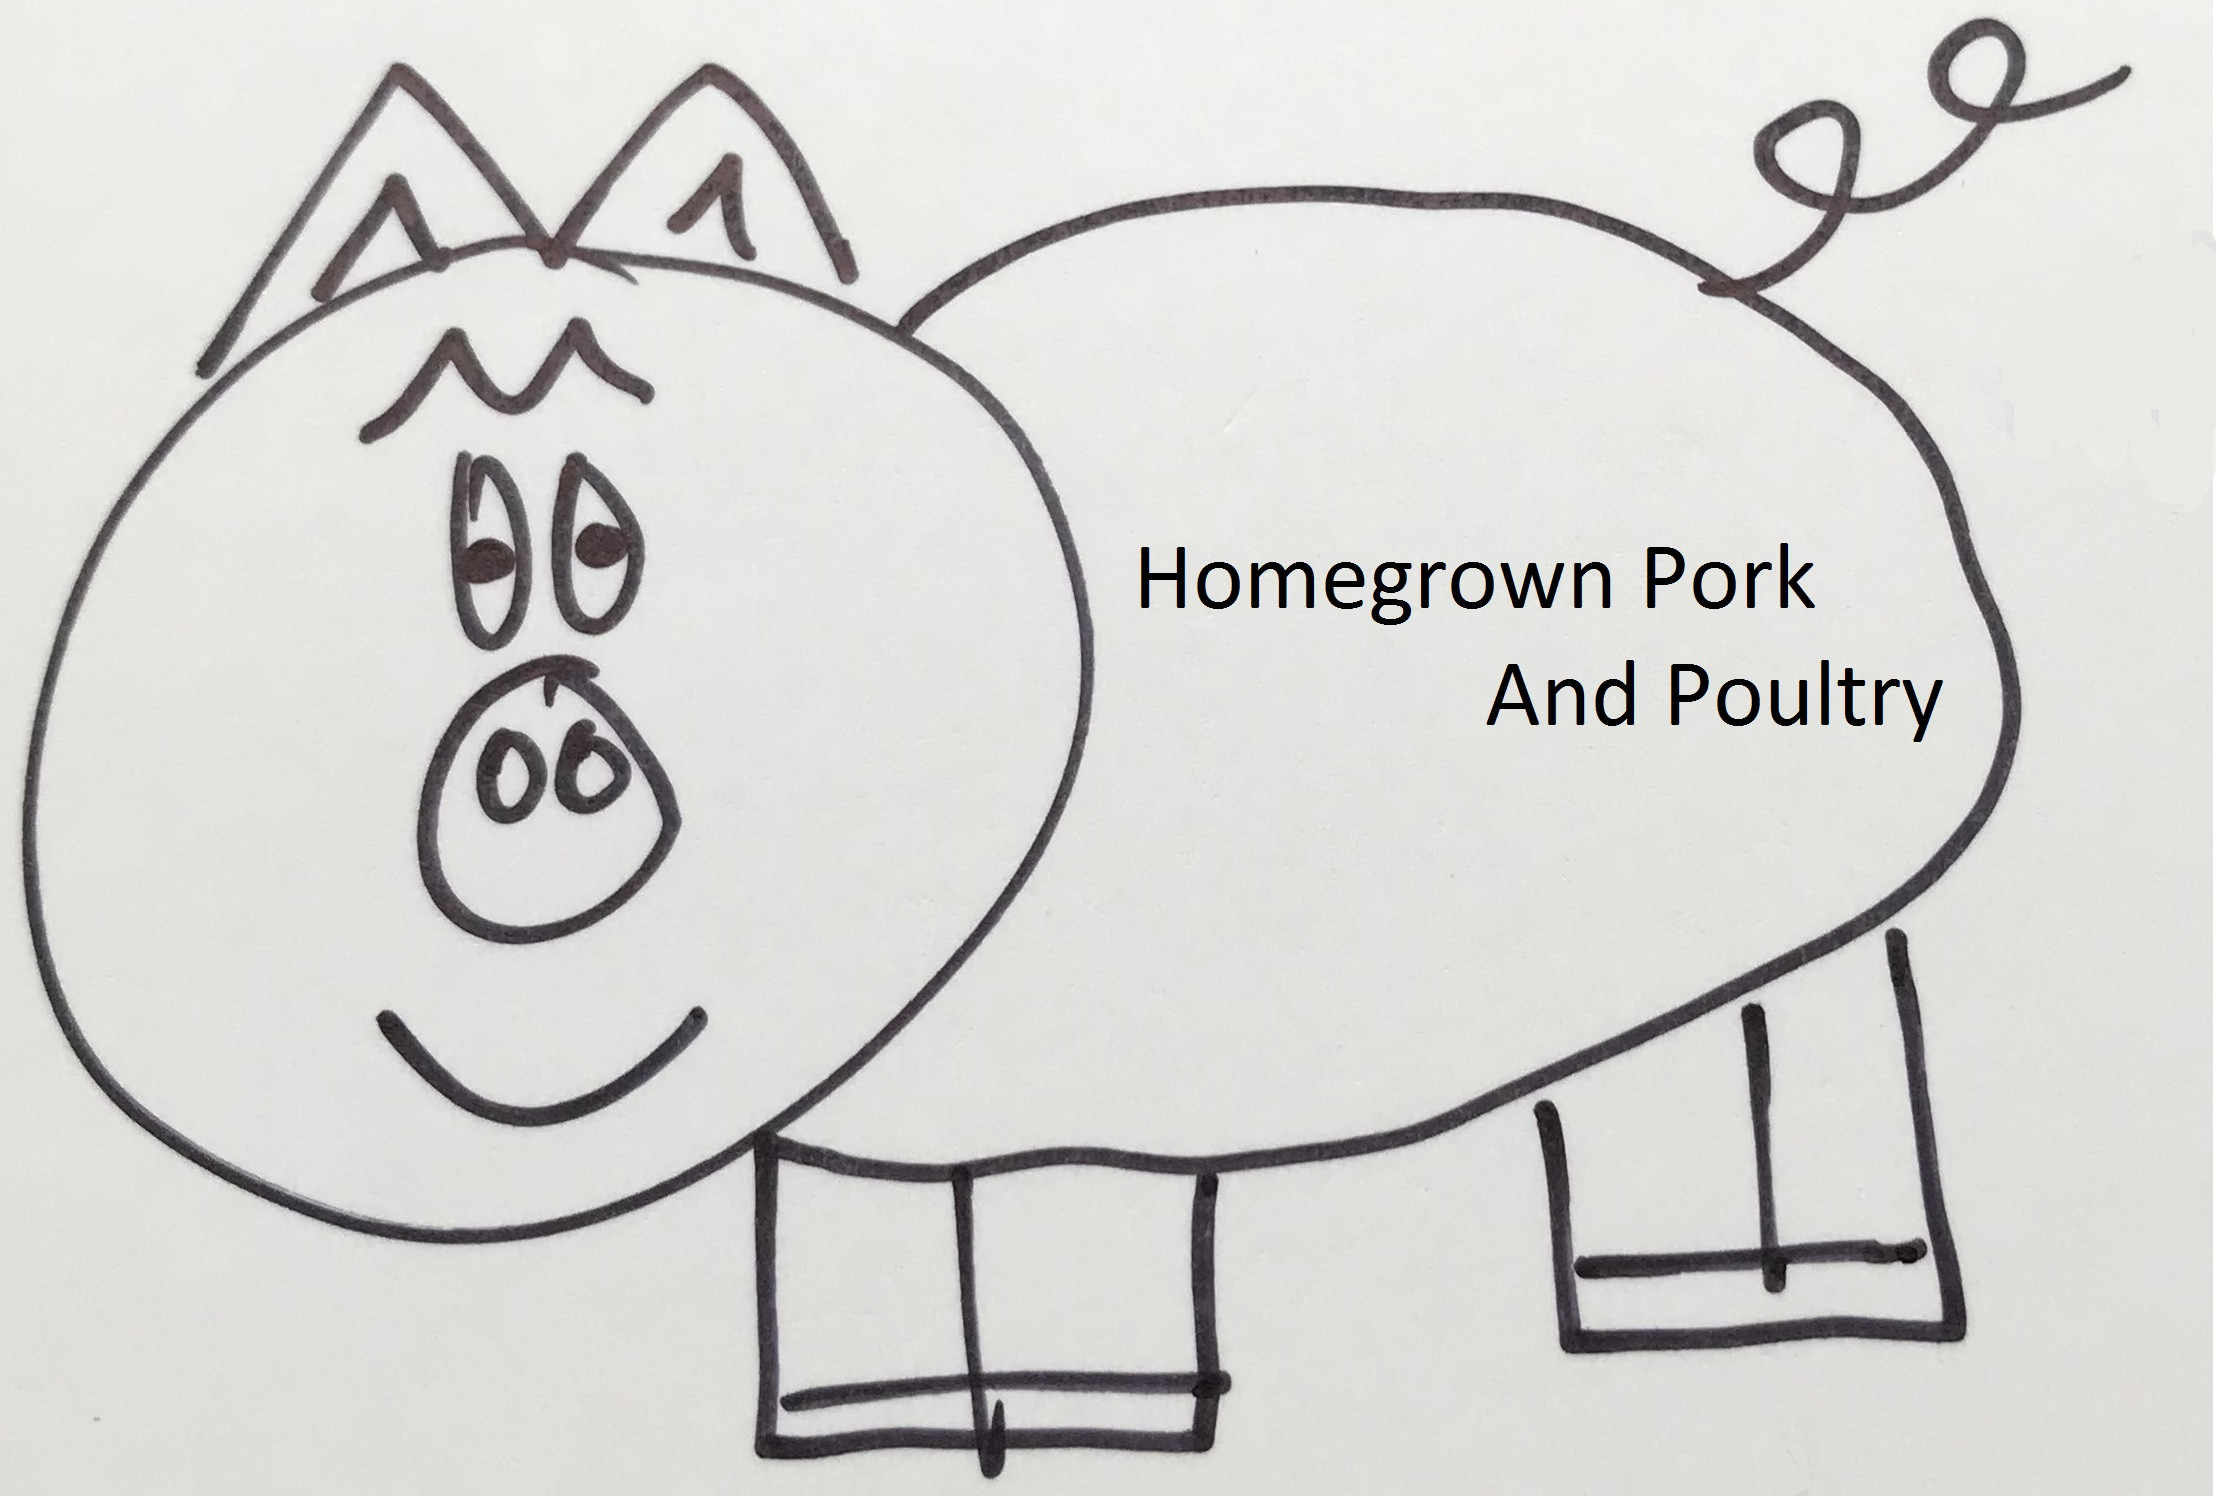 Homegrown Pork and Poultry Logo